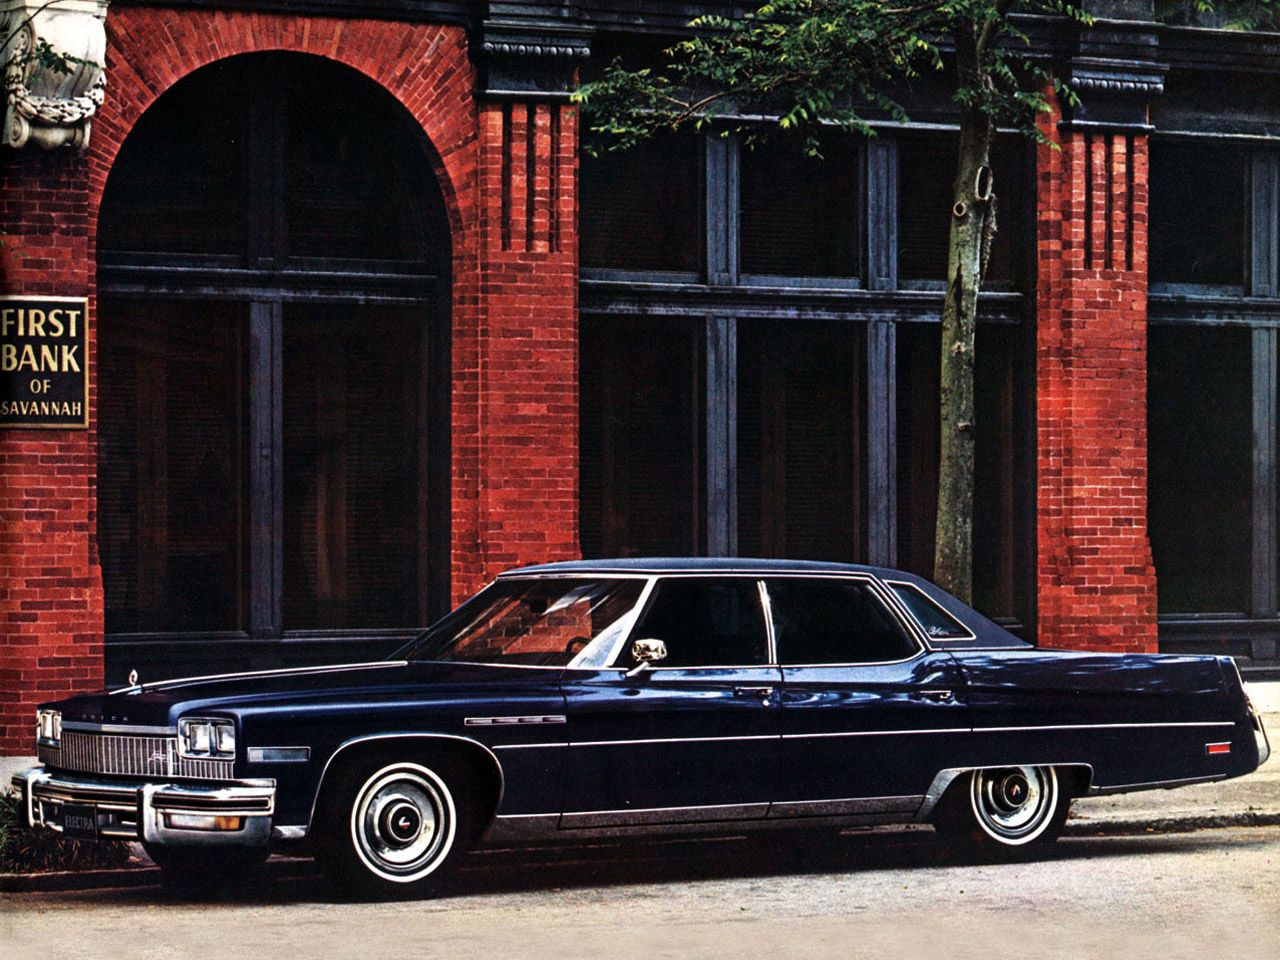 1968 buick electra 225 2 door hardtop front 3 4 81136 - 1975 Buick Electra 225 Limited We Had One Of These Growing Up